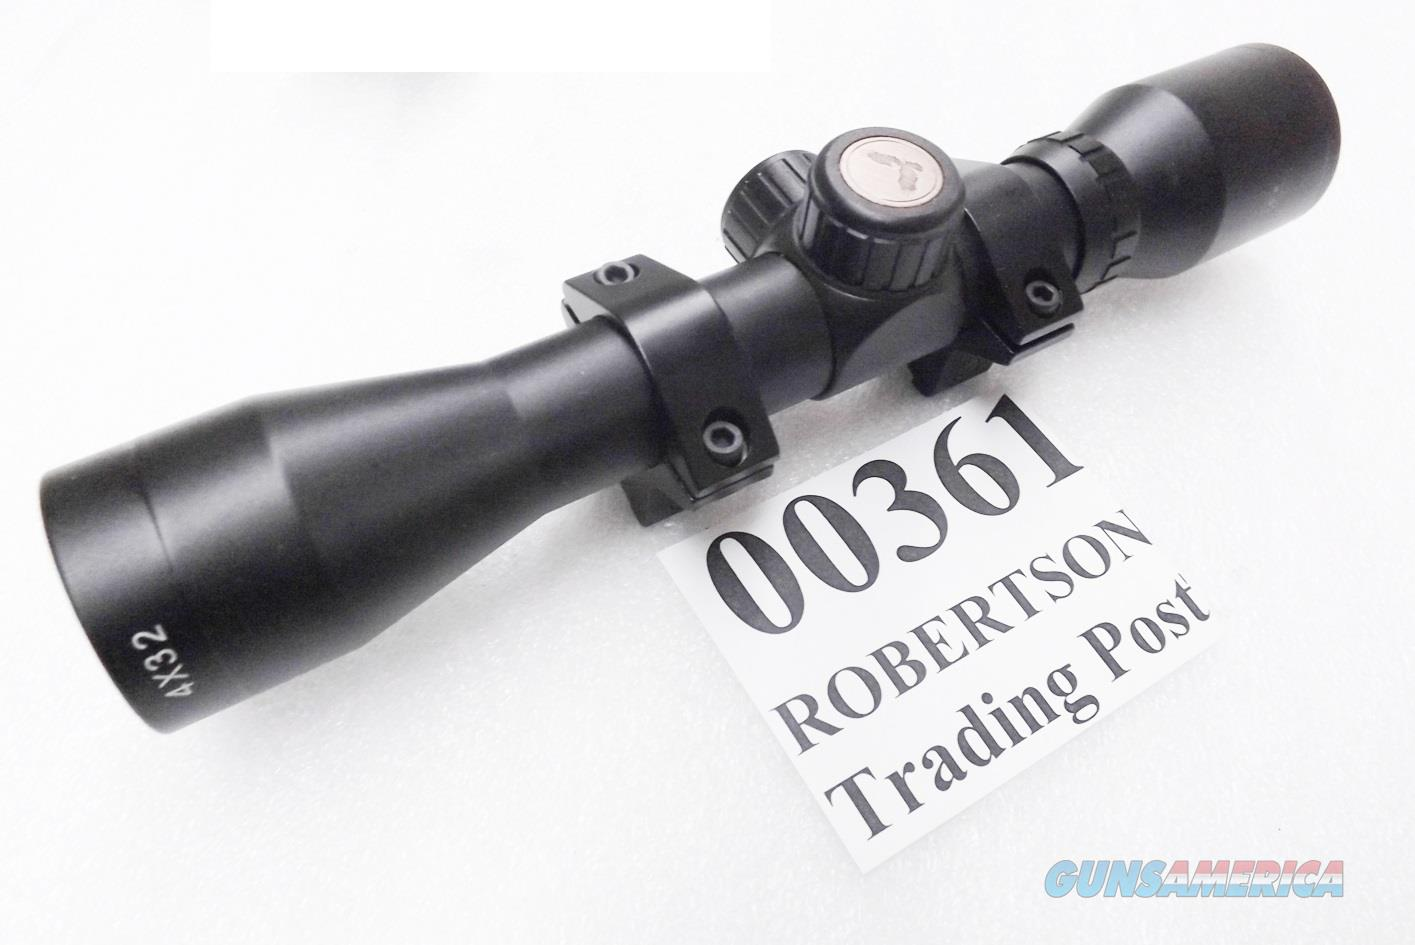 Field & Stream Delta OEM 4x32 Rifle Shotgun Scope 50 yard parallax New with Lens Covers, 1 inch tube with free set of 5/8 Grooved Receiver .22 Rings HEH00361 variant of HEH01215 $3 ship, 3 ship Free!  Non-Guns > Scopes/Mounts/Rings & Optics > Rifle Scopes > Fixed Focal Length